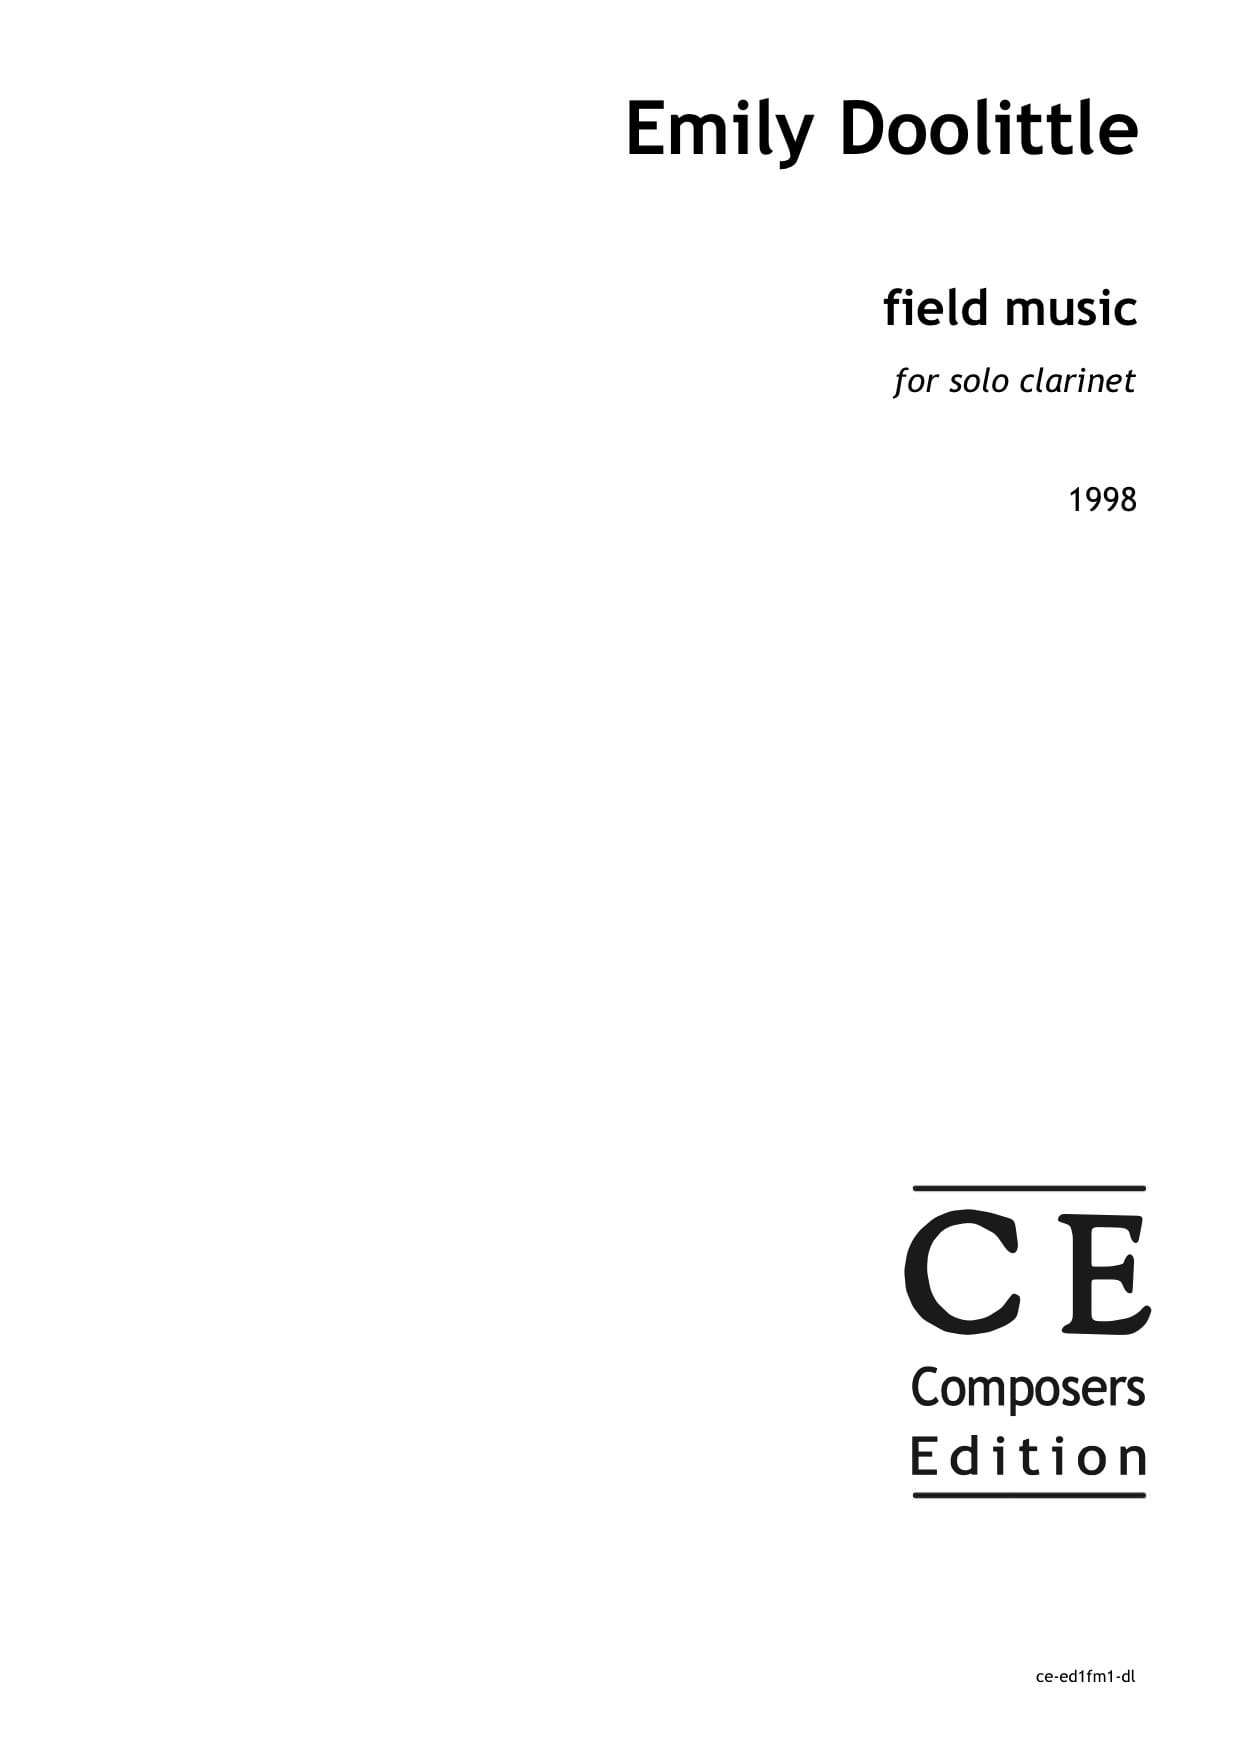 Emily Doolittle: field music for solo clarinet